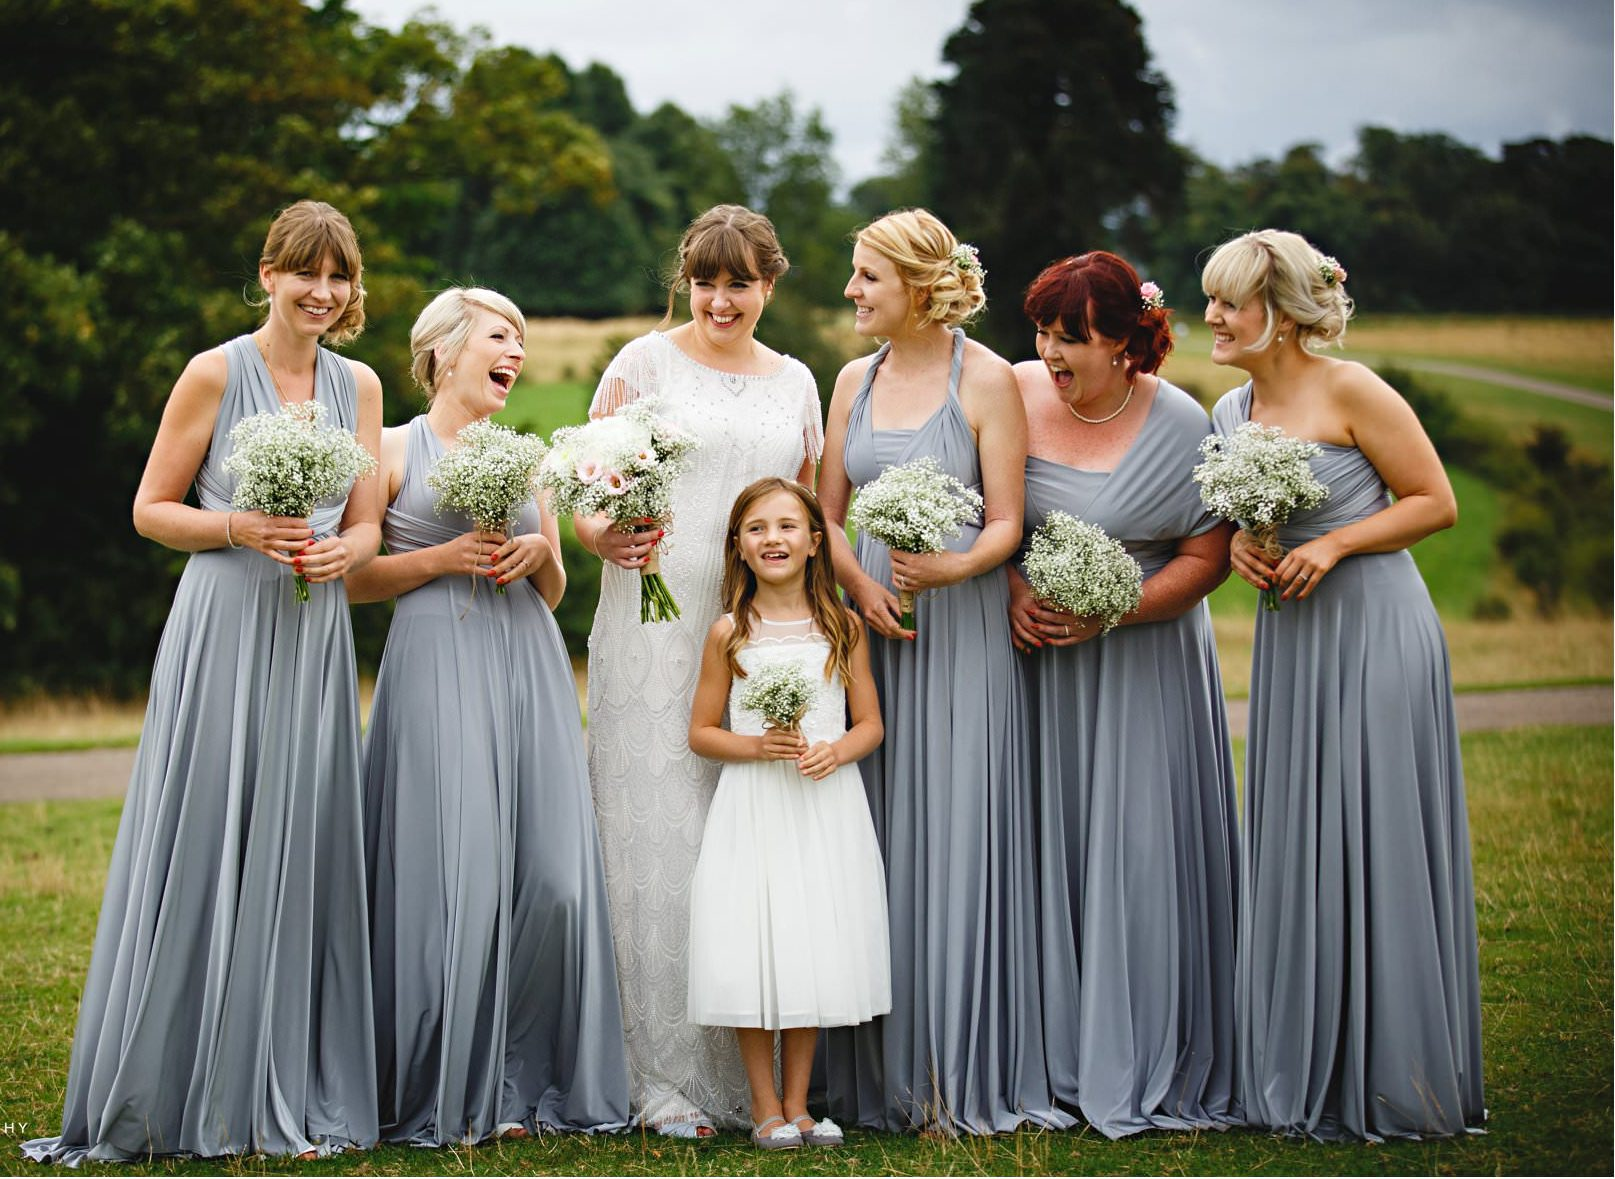 Real Bride Amy wears Fleur by Eliza Jane Howell - Bridesmaids